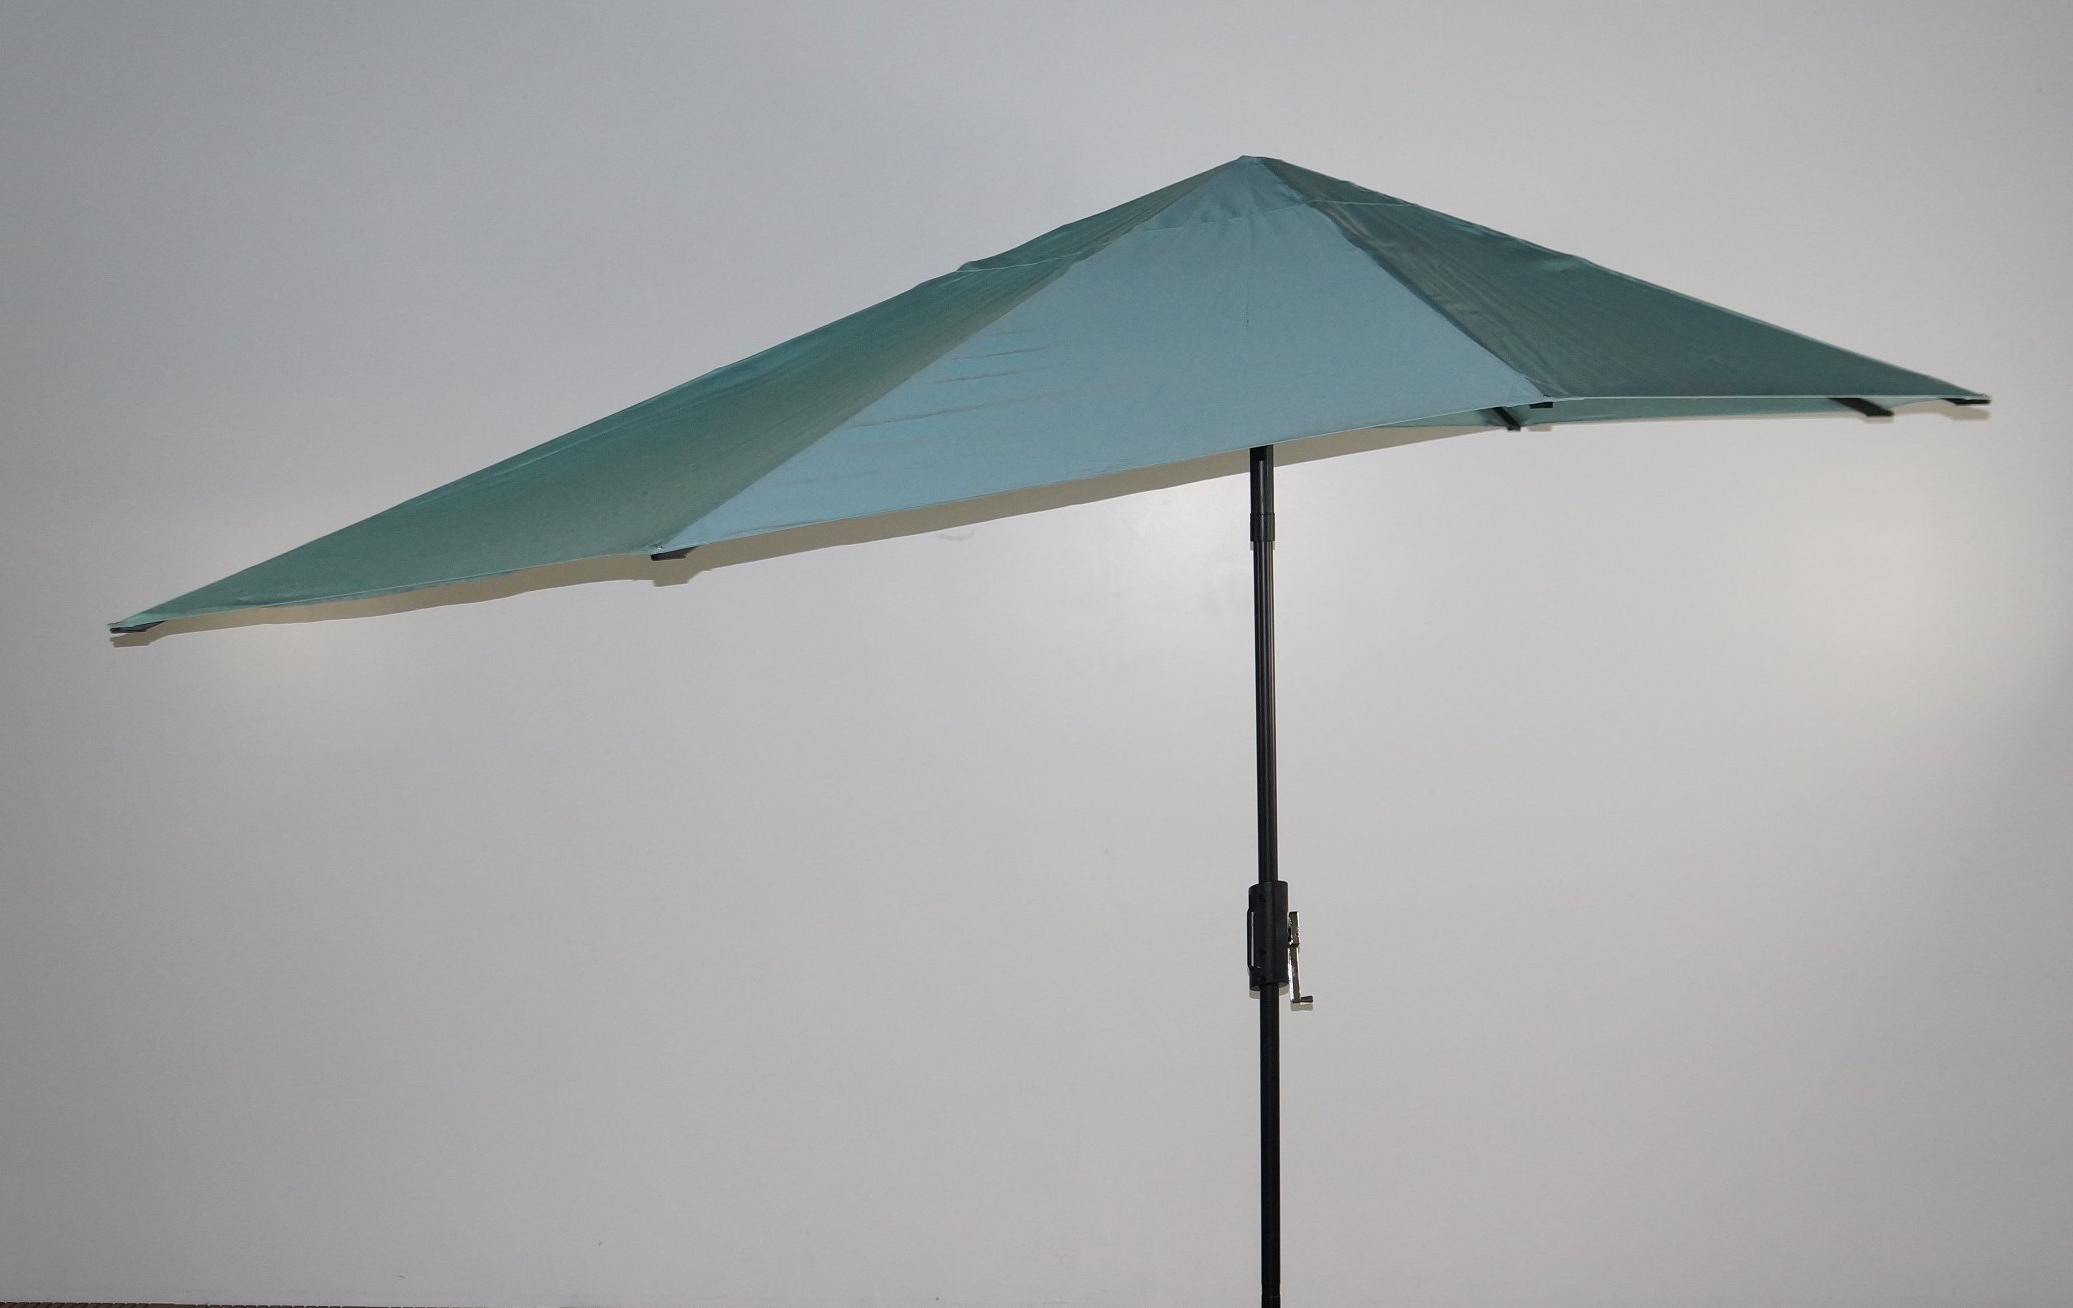 Madalyn Rectangular Market Sunbrella Umbrellas With Regard To Preferred 16' Market Umbrella (View 6 of 20)